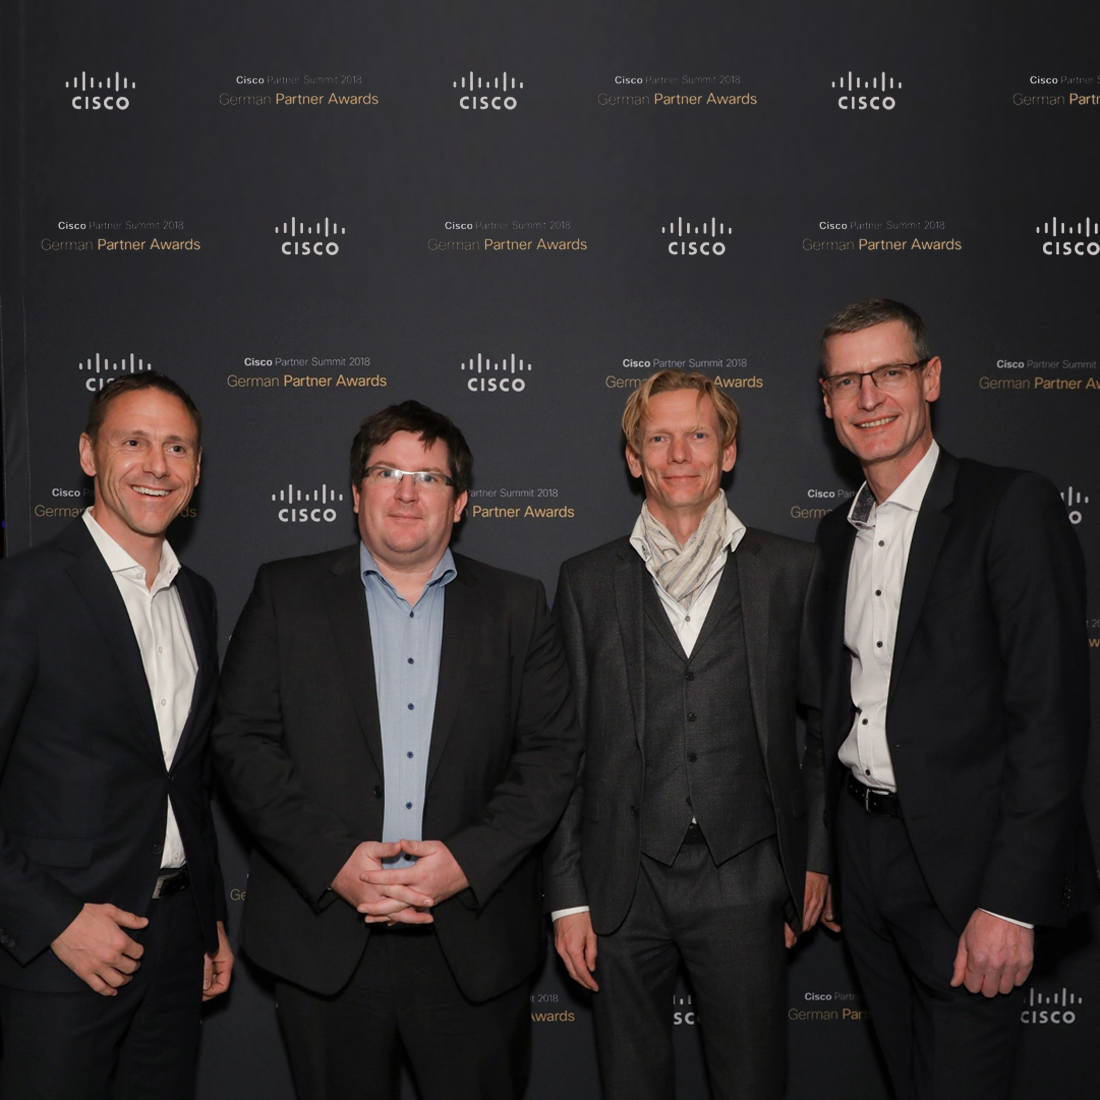 Armin Neumaier (Head of Regional Partner Sales Cisco), Marc Niederberghaus (Leiter Business Development Controlware GmbH), Bernd Schwefing (Geschäftsführer Controlware GmbH) und Kay Wintrich (Director Systems Engineering, Cisco) beim Cisco Partner Summit in Las Vegas.